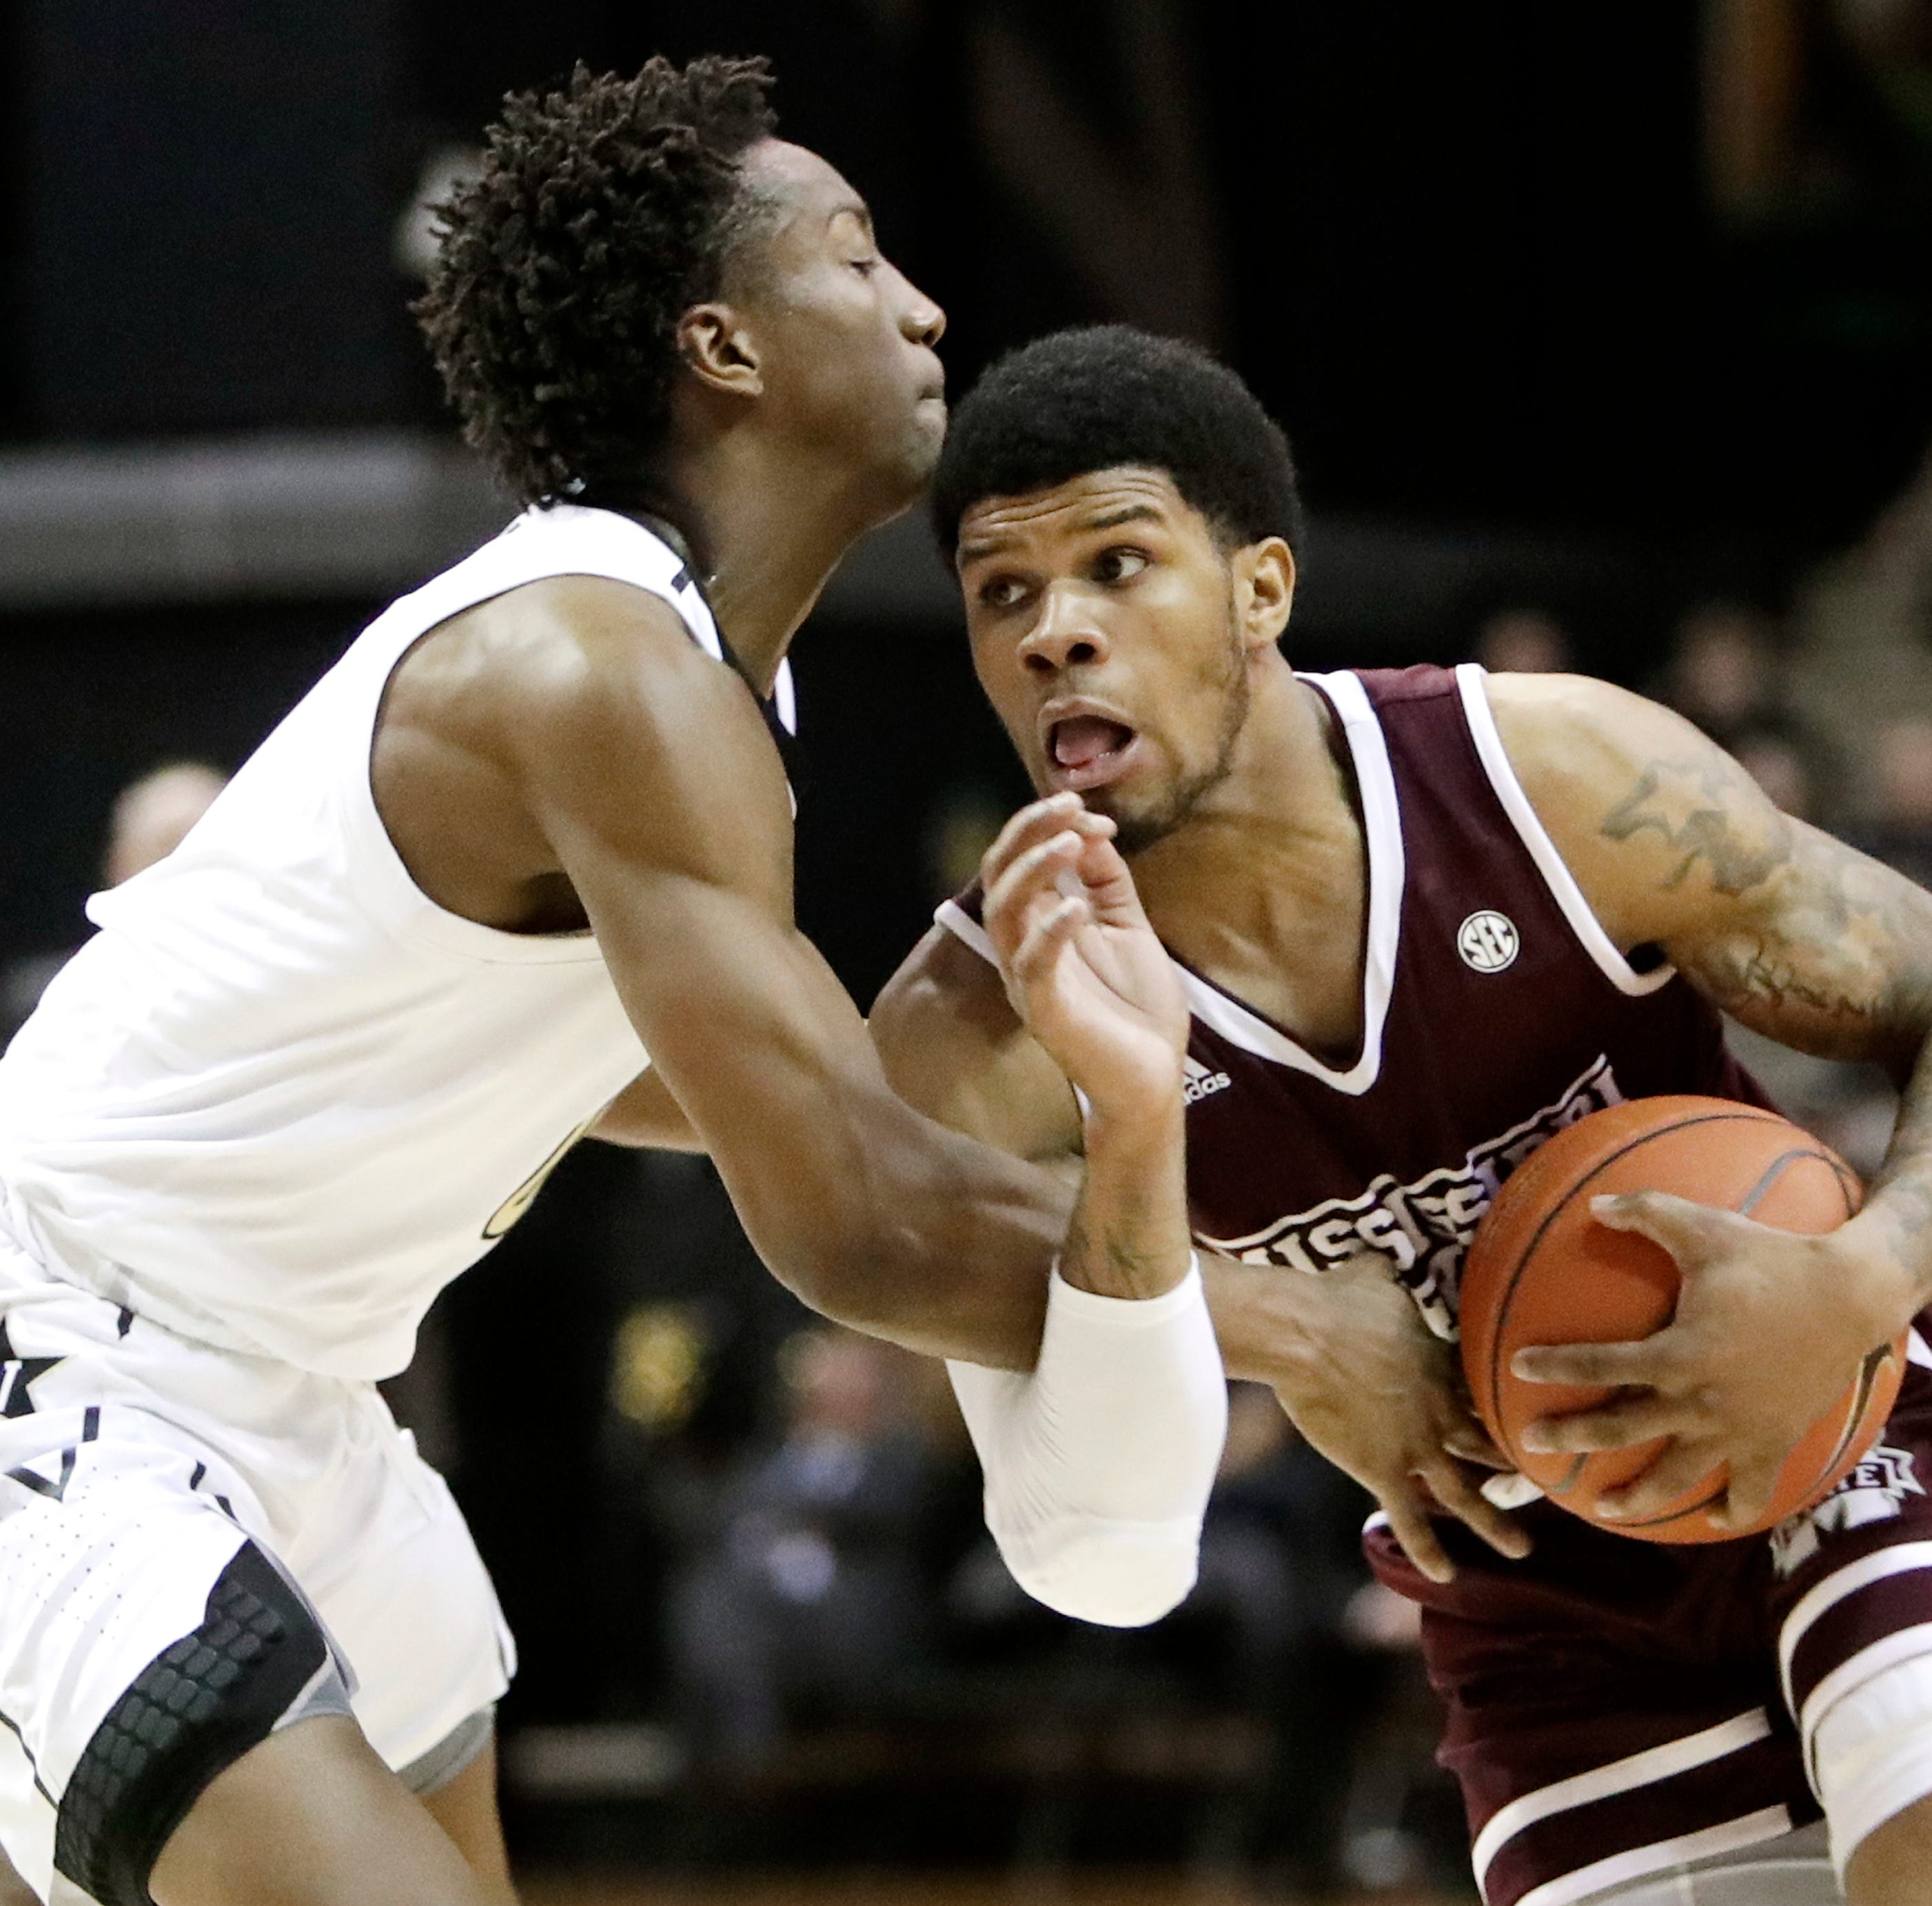 Vanderbilt basketball losing streak grows in loss to Mississippi State